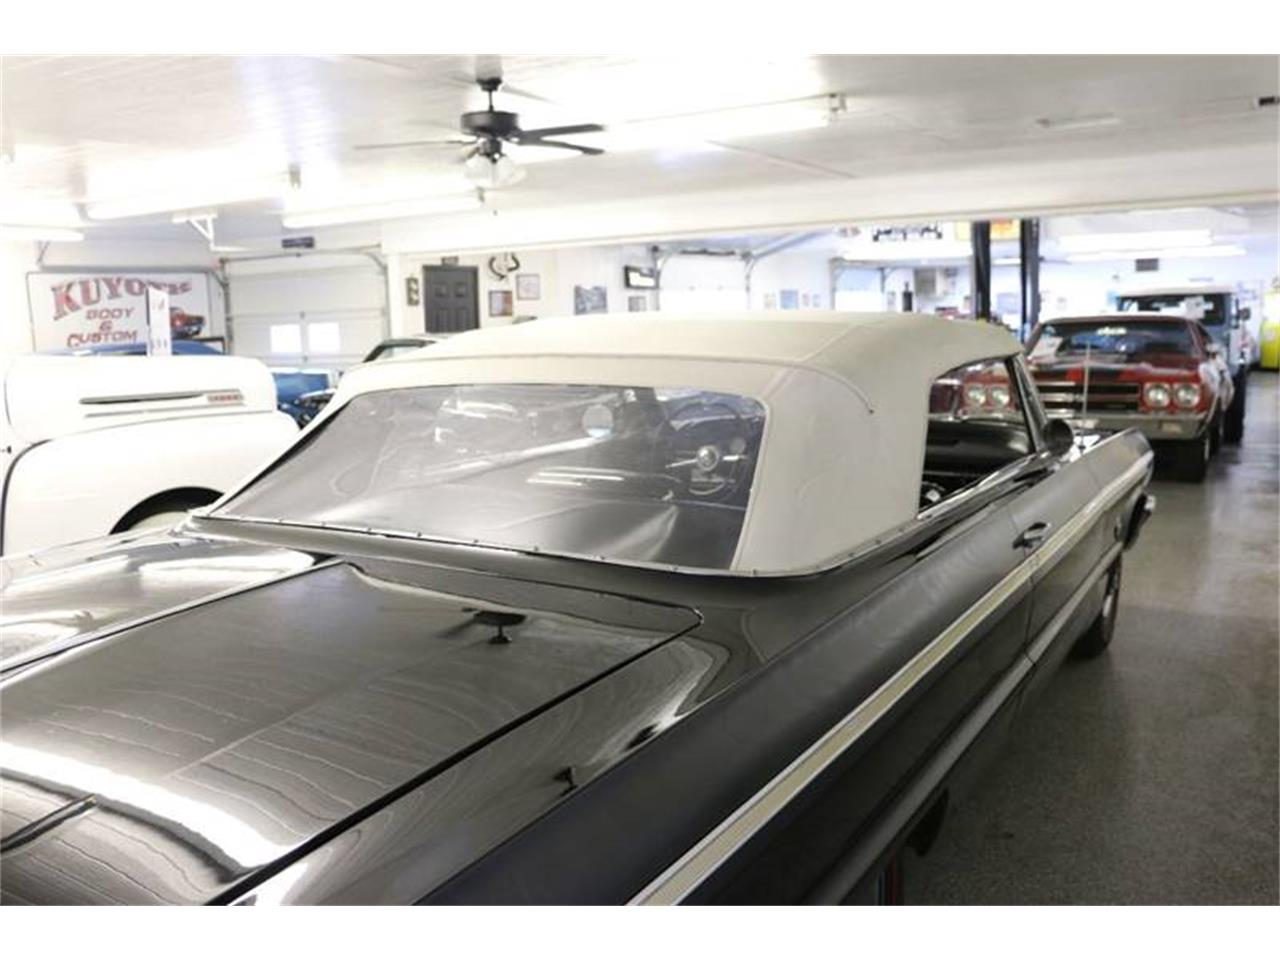 Large Picture of '64 Chevrolet Impala - $45,500.00 Offered by Kuyoth's Klassics - MHC3